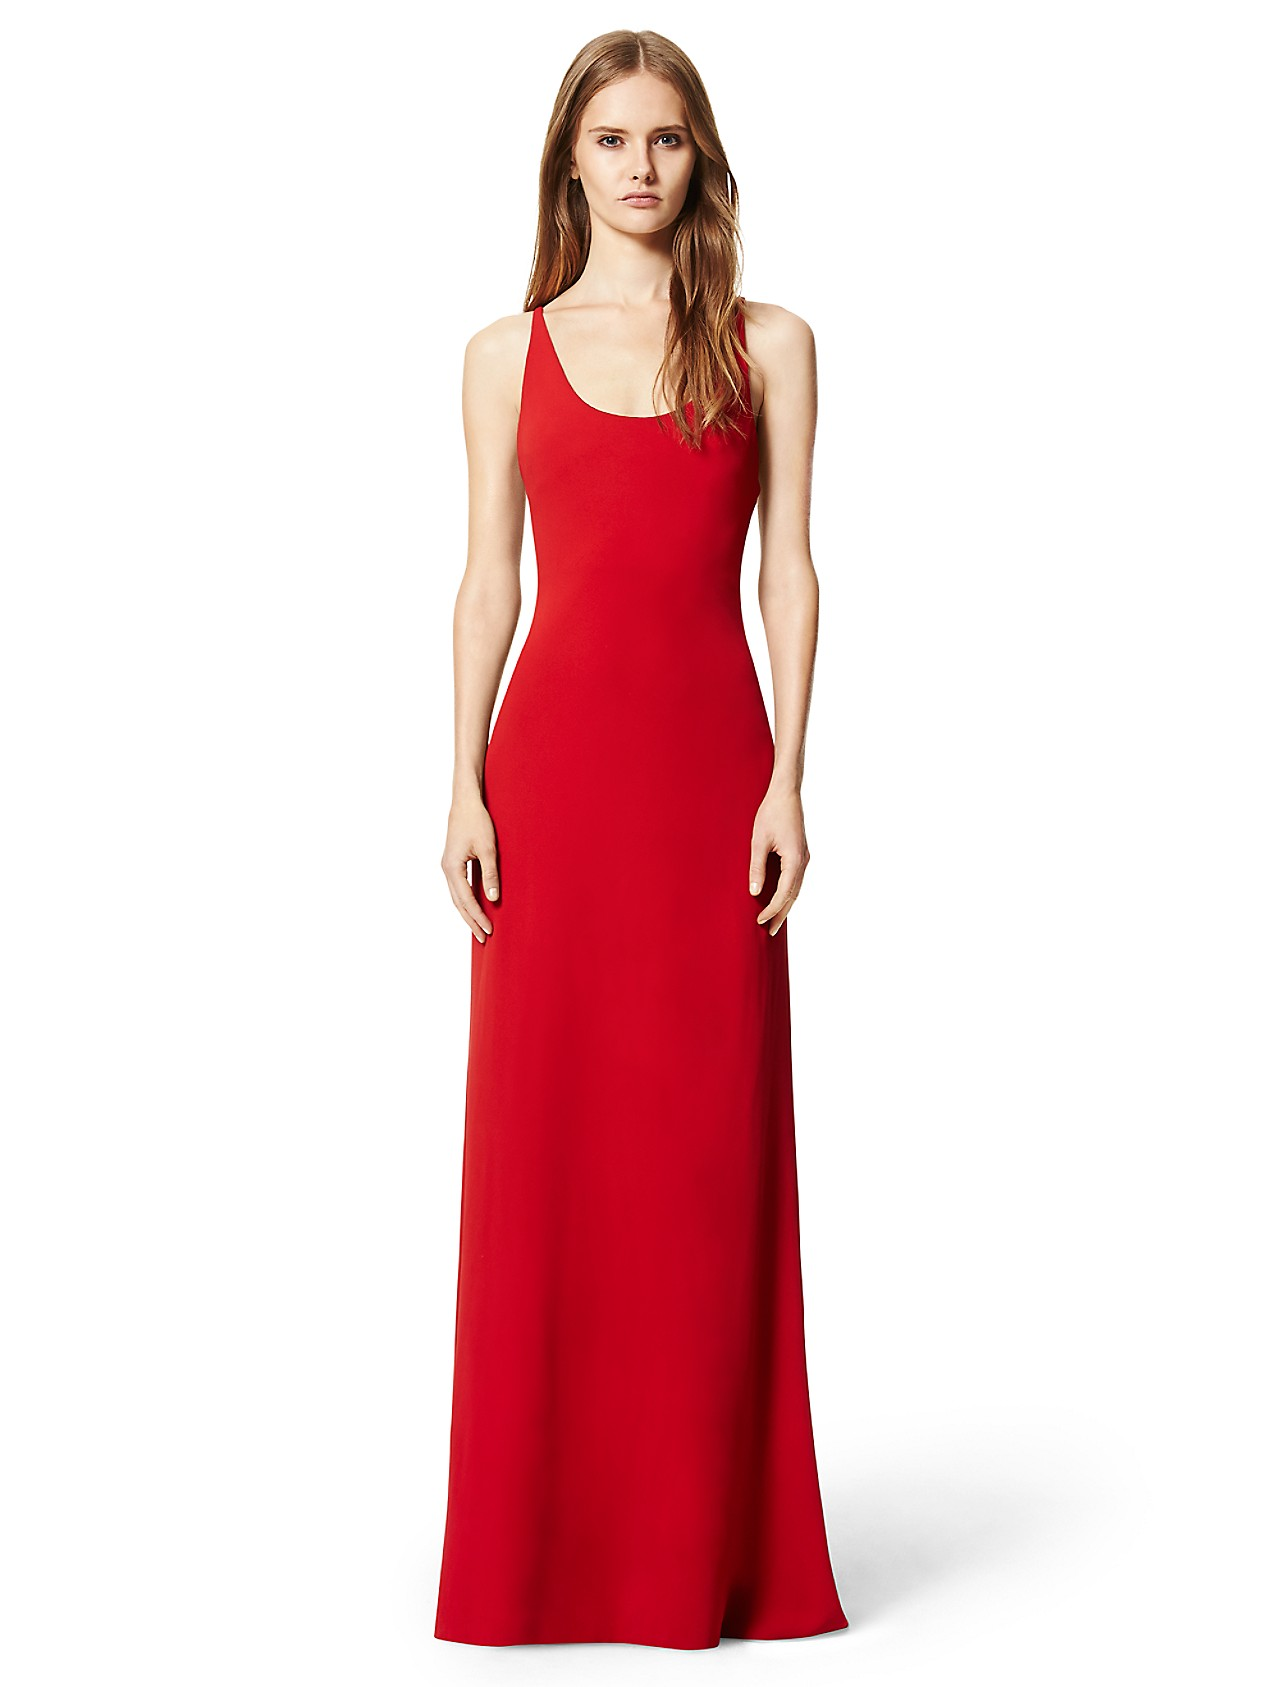 Red Dresses for Women: Styles and How to Wear Them – careyfashion.com